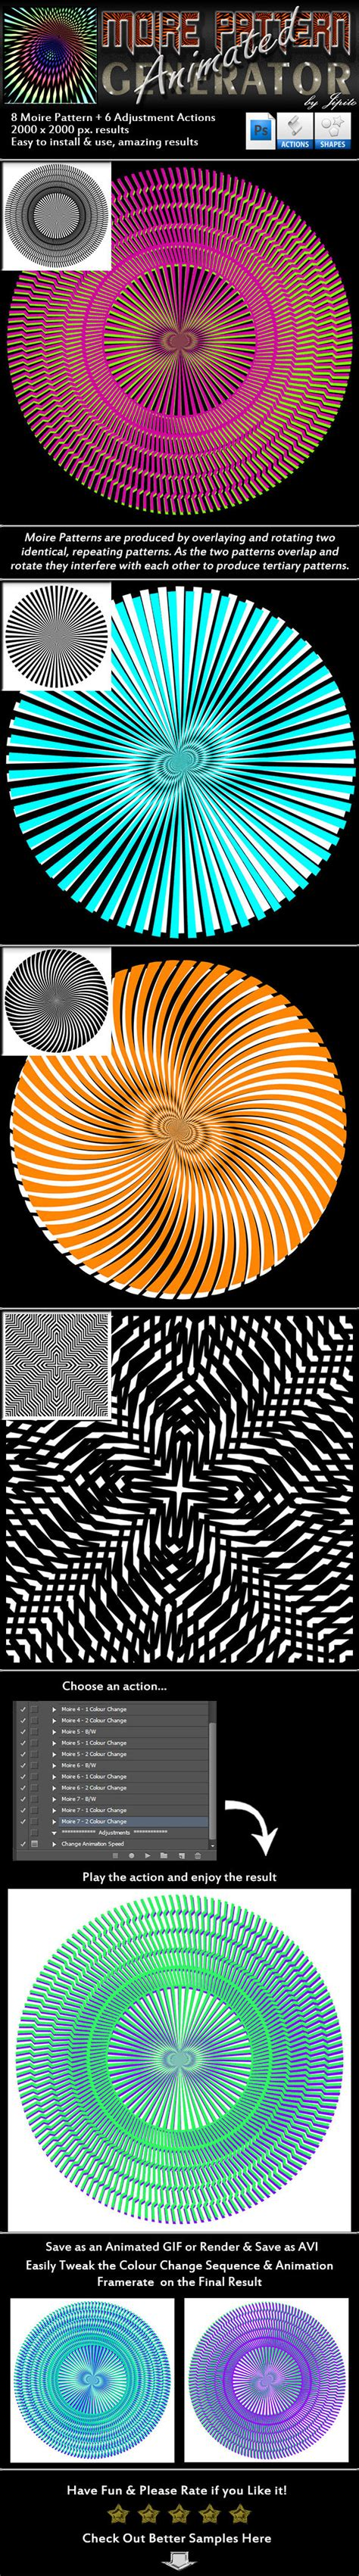 pattern generator photoshop action animated moire pattern generator by jipito graphicriver